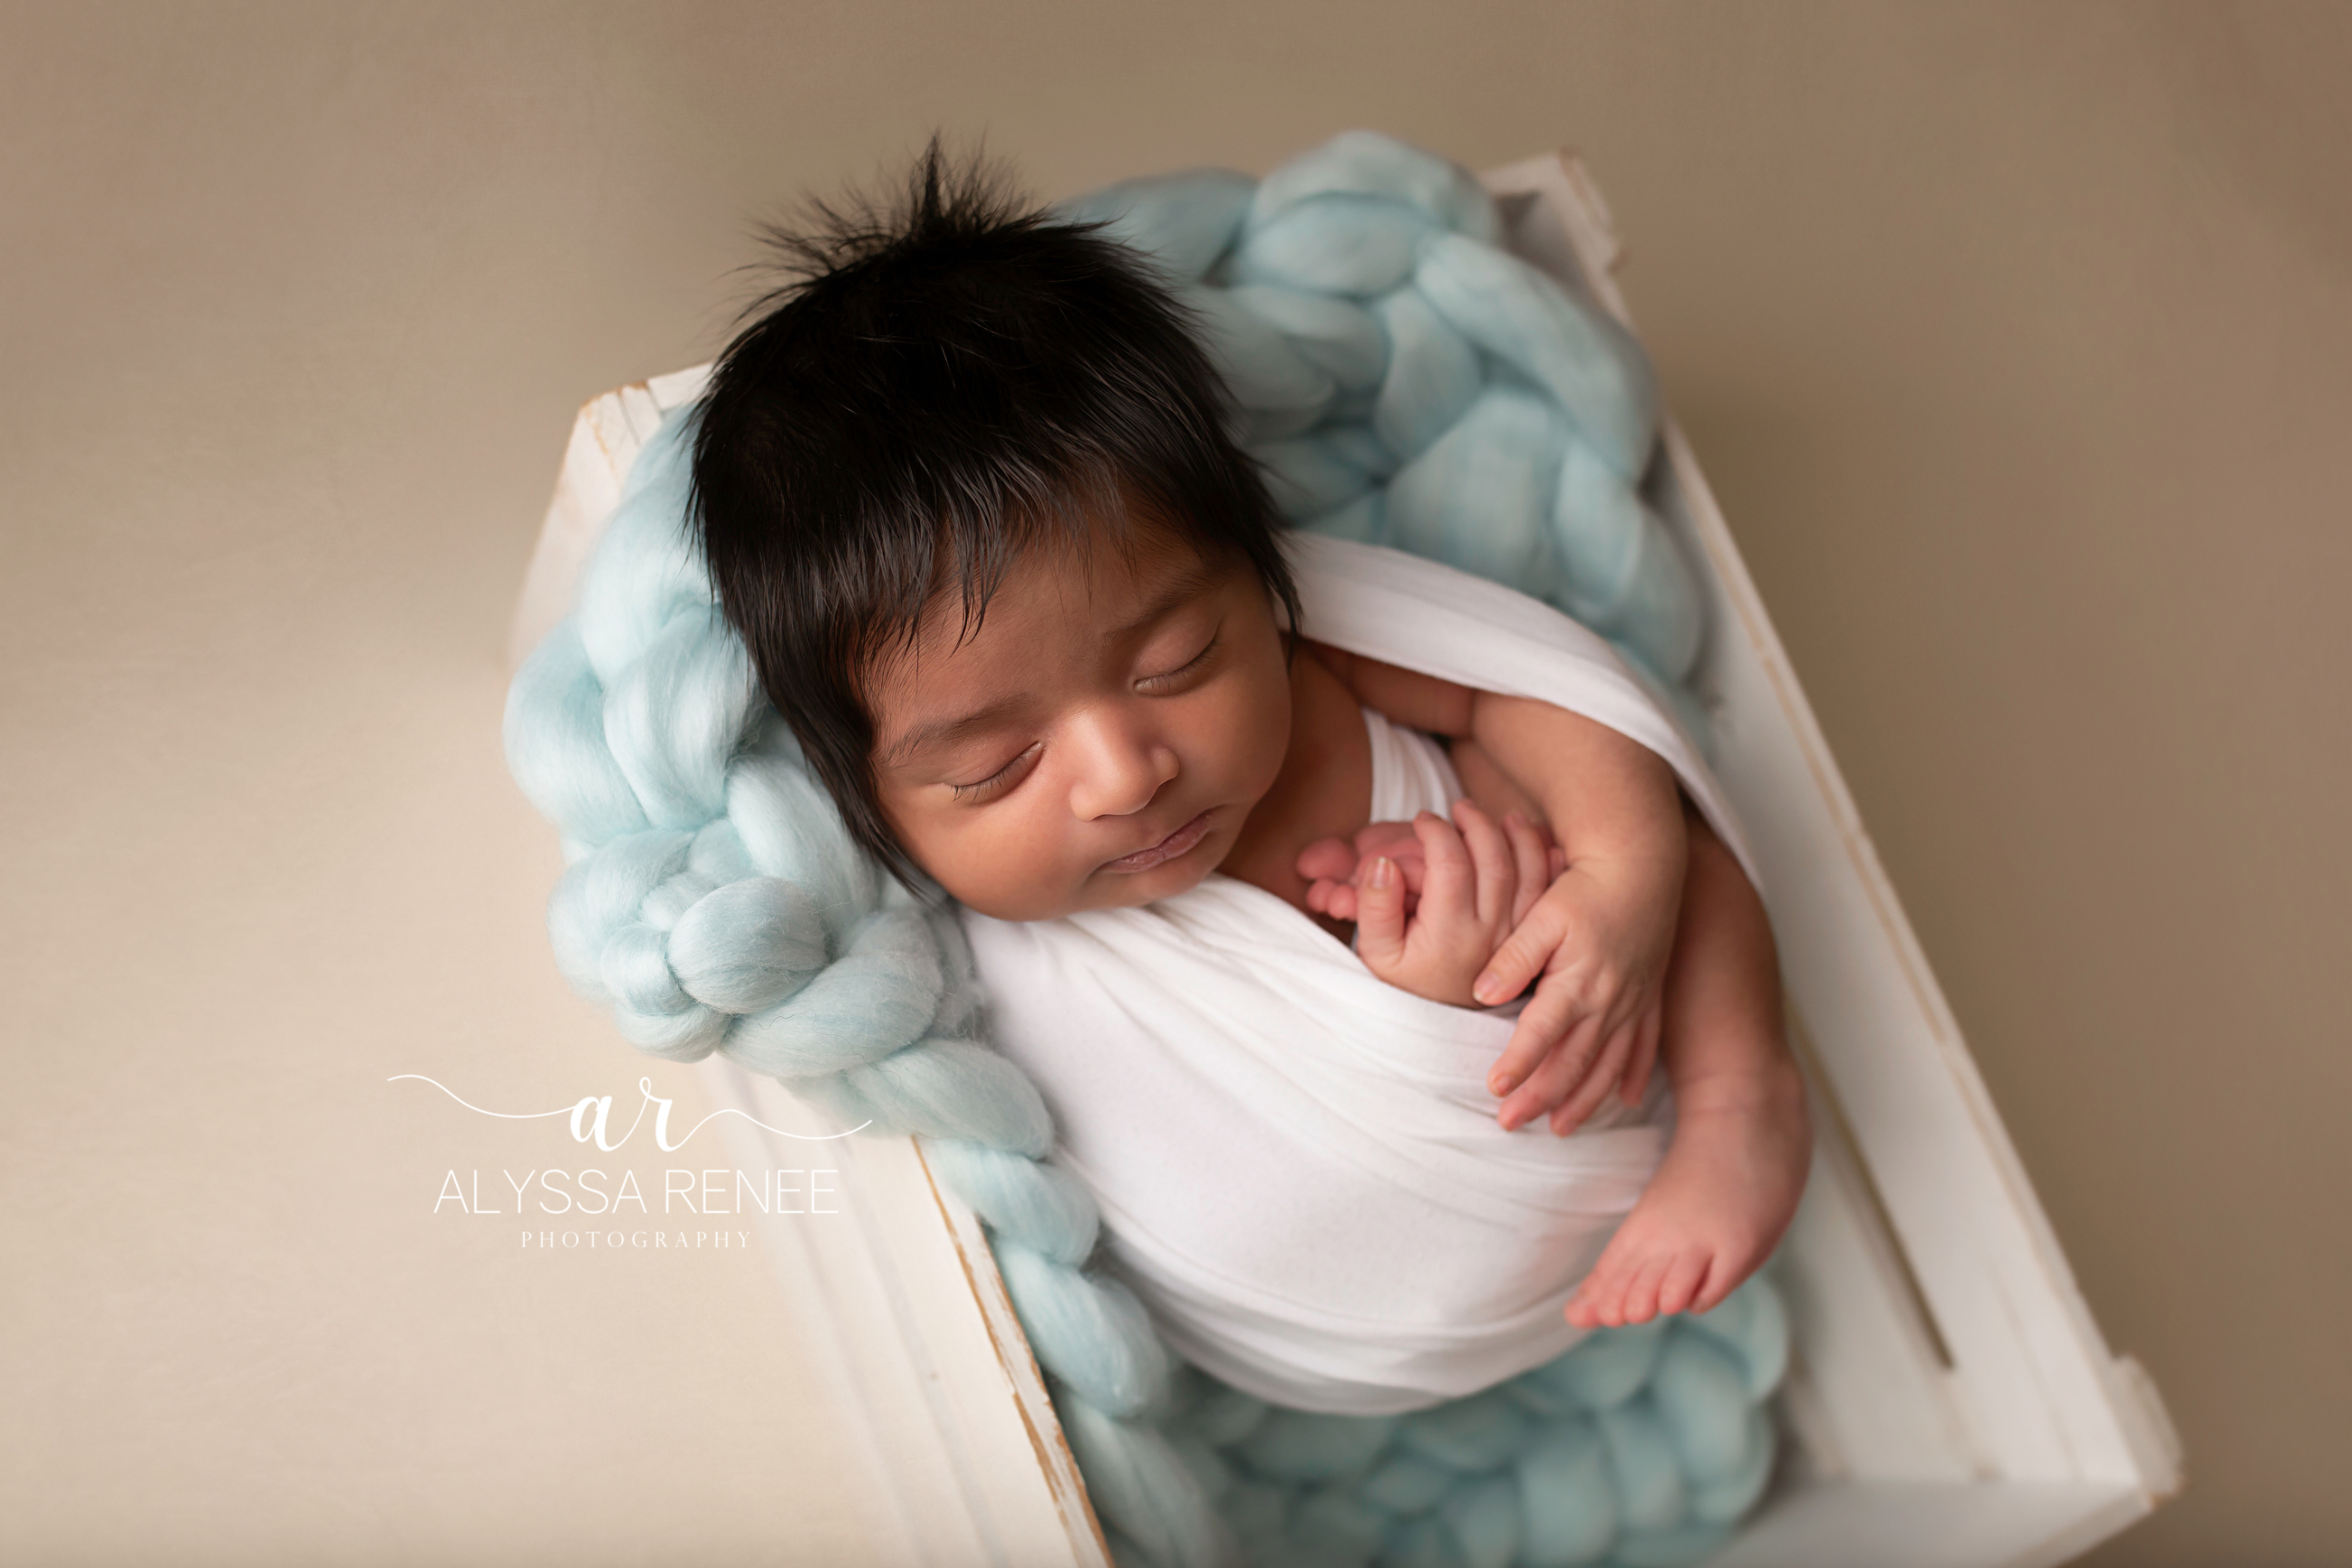 Baby portrait swaddled in box with handmade blue blanket prop